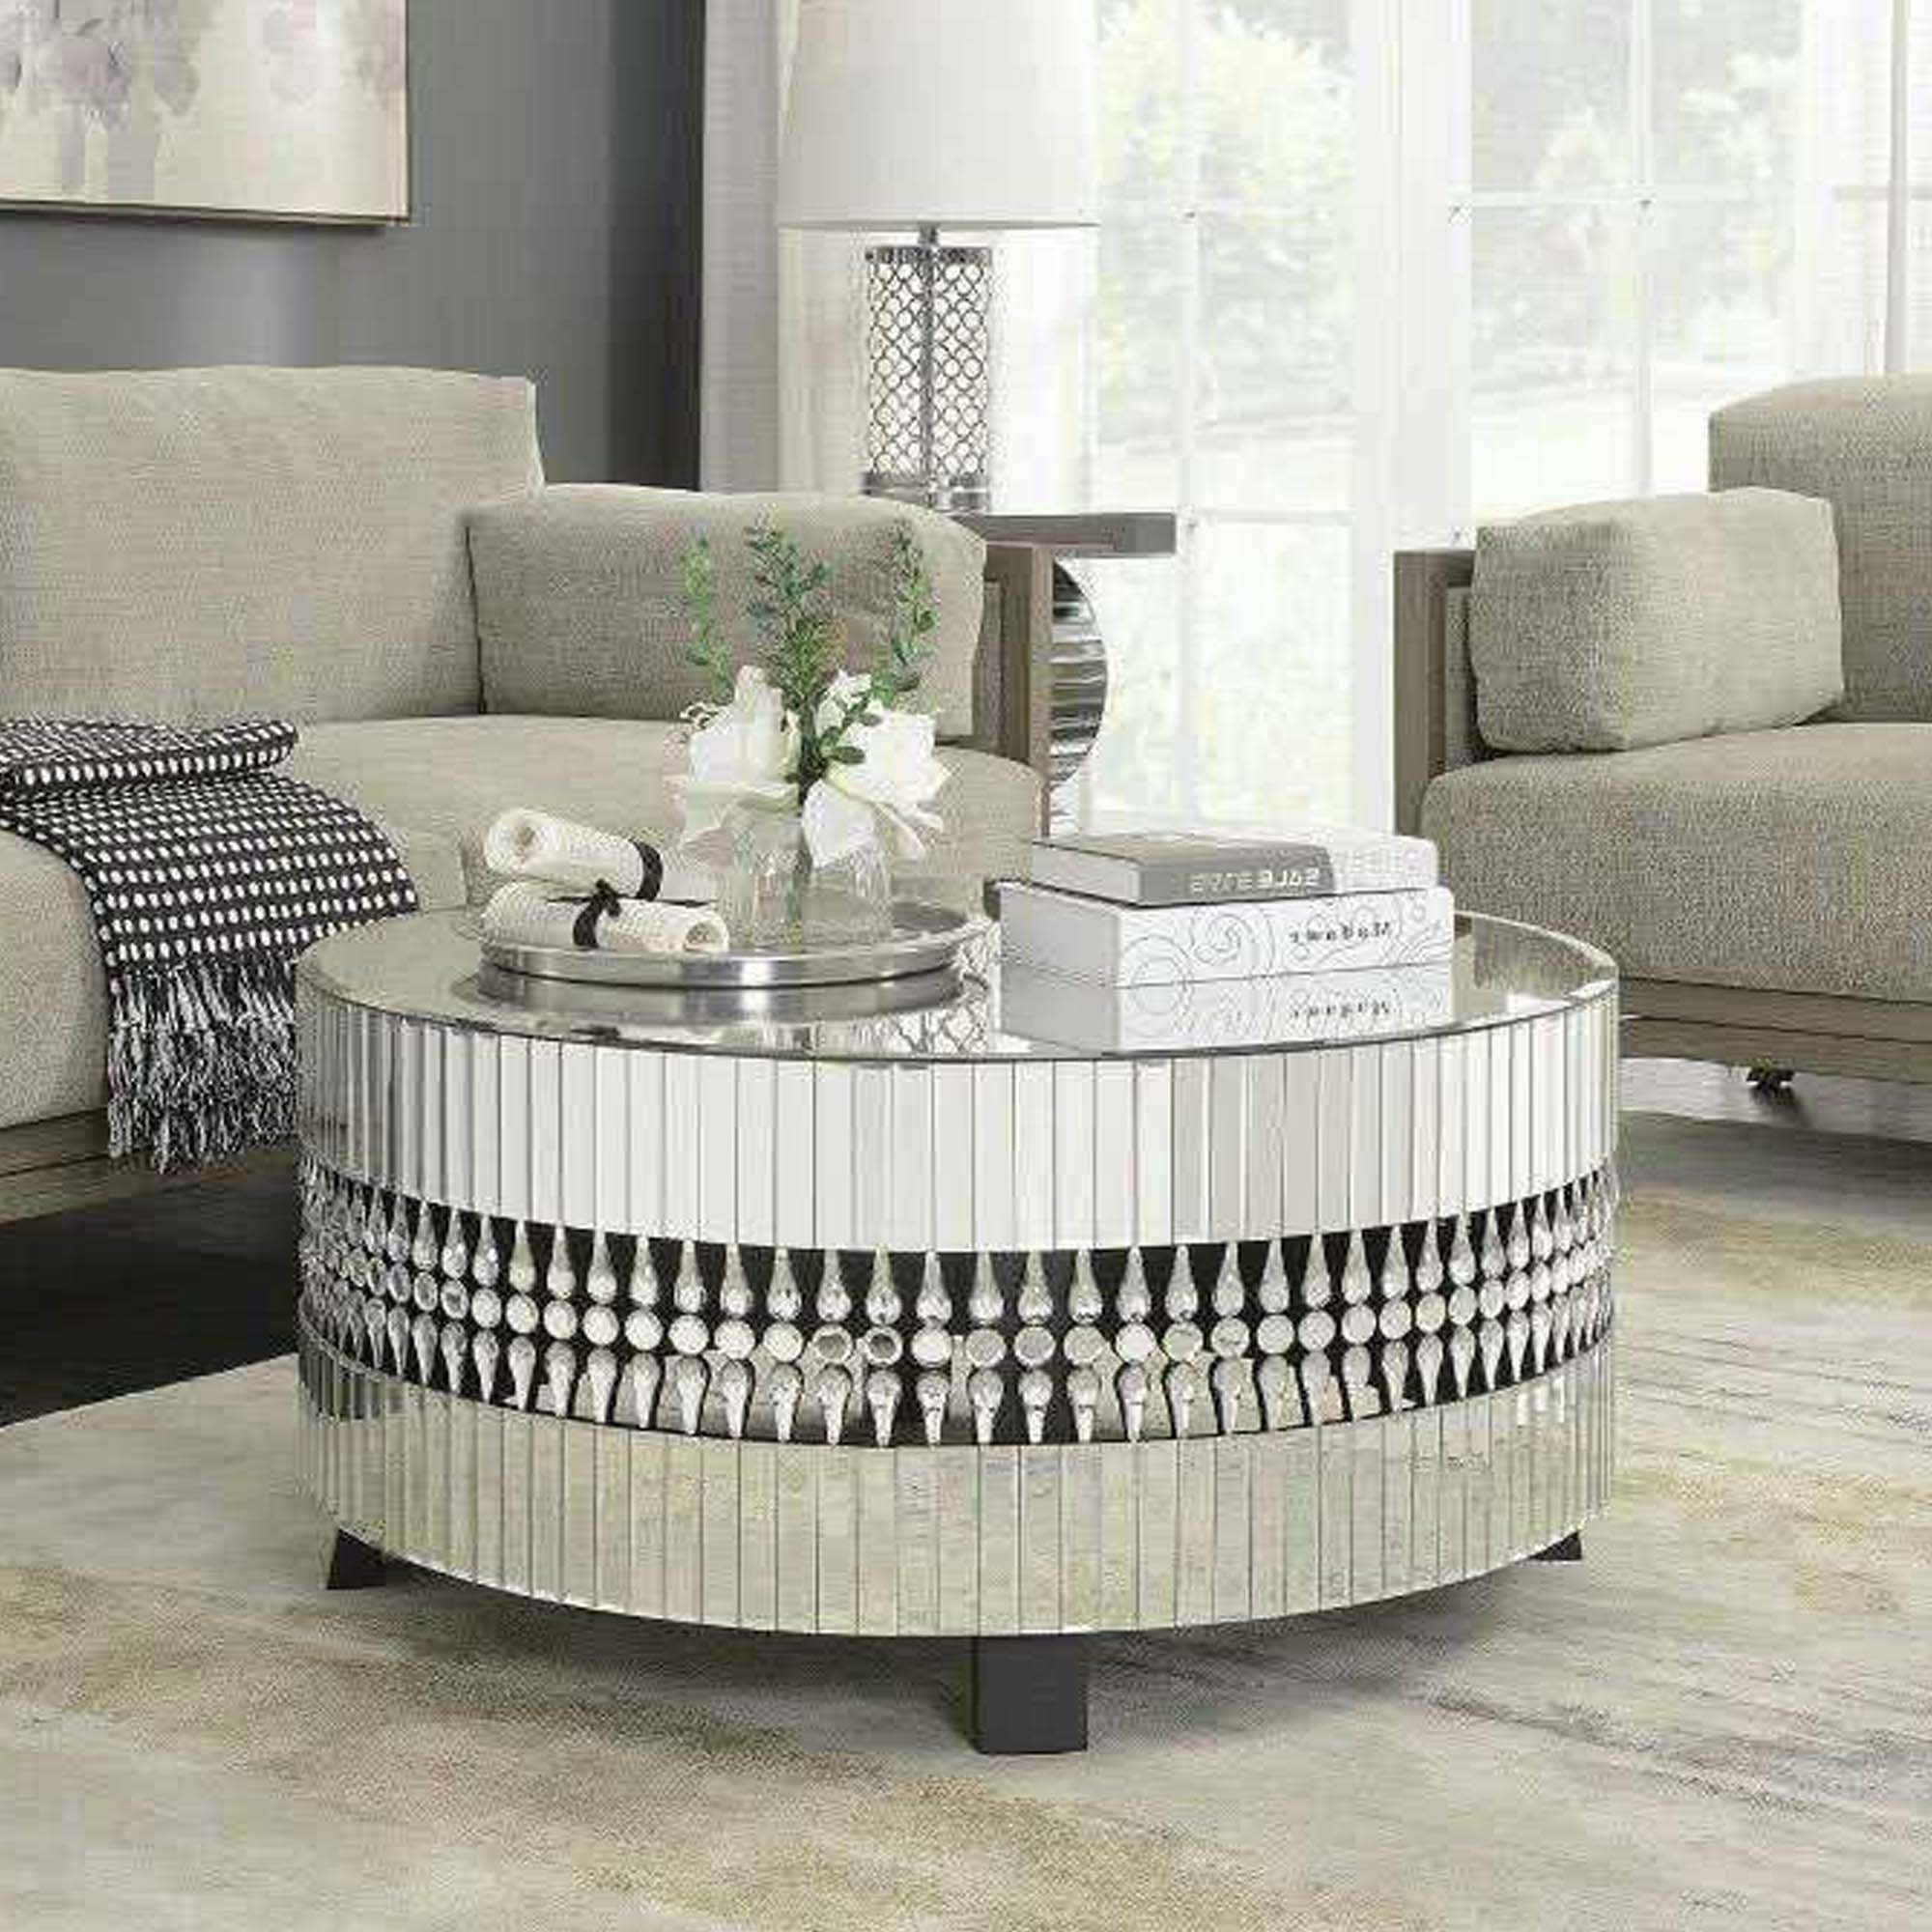 Most Recently Released Small Mirrored Coffee Tables Pertaining To Coffee Tables : Crystal Mirrored Coffee Table White Marble Sale (View 11 of 20)